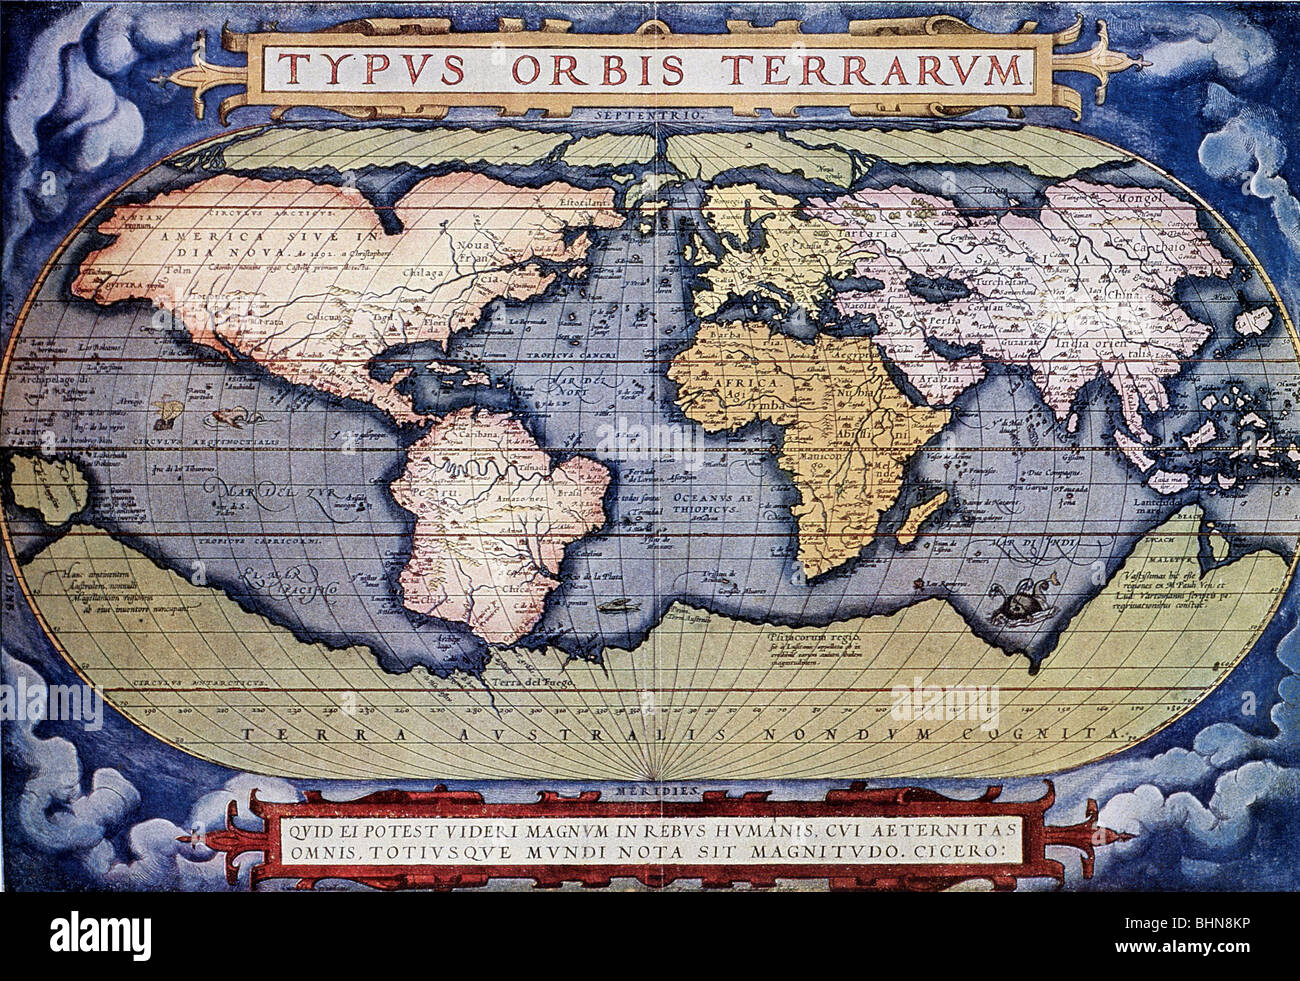 Cartography world maps typus orbus terrarum of abraham ortelius cartography world maps typus orbus terrarum of abraham ortelius 1571 colour print map america europe asia africa au gumiabroncs Gallery